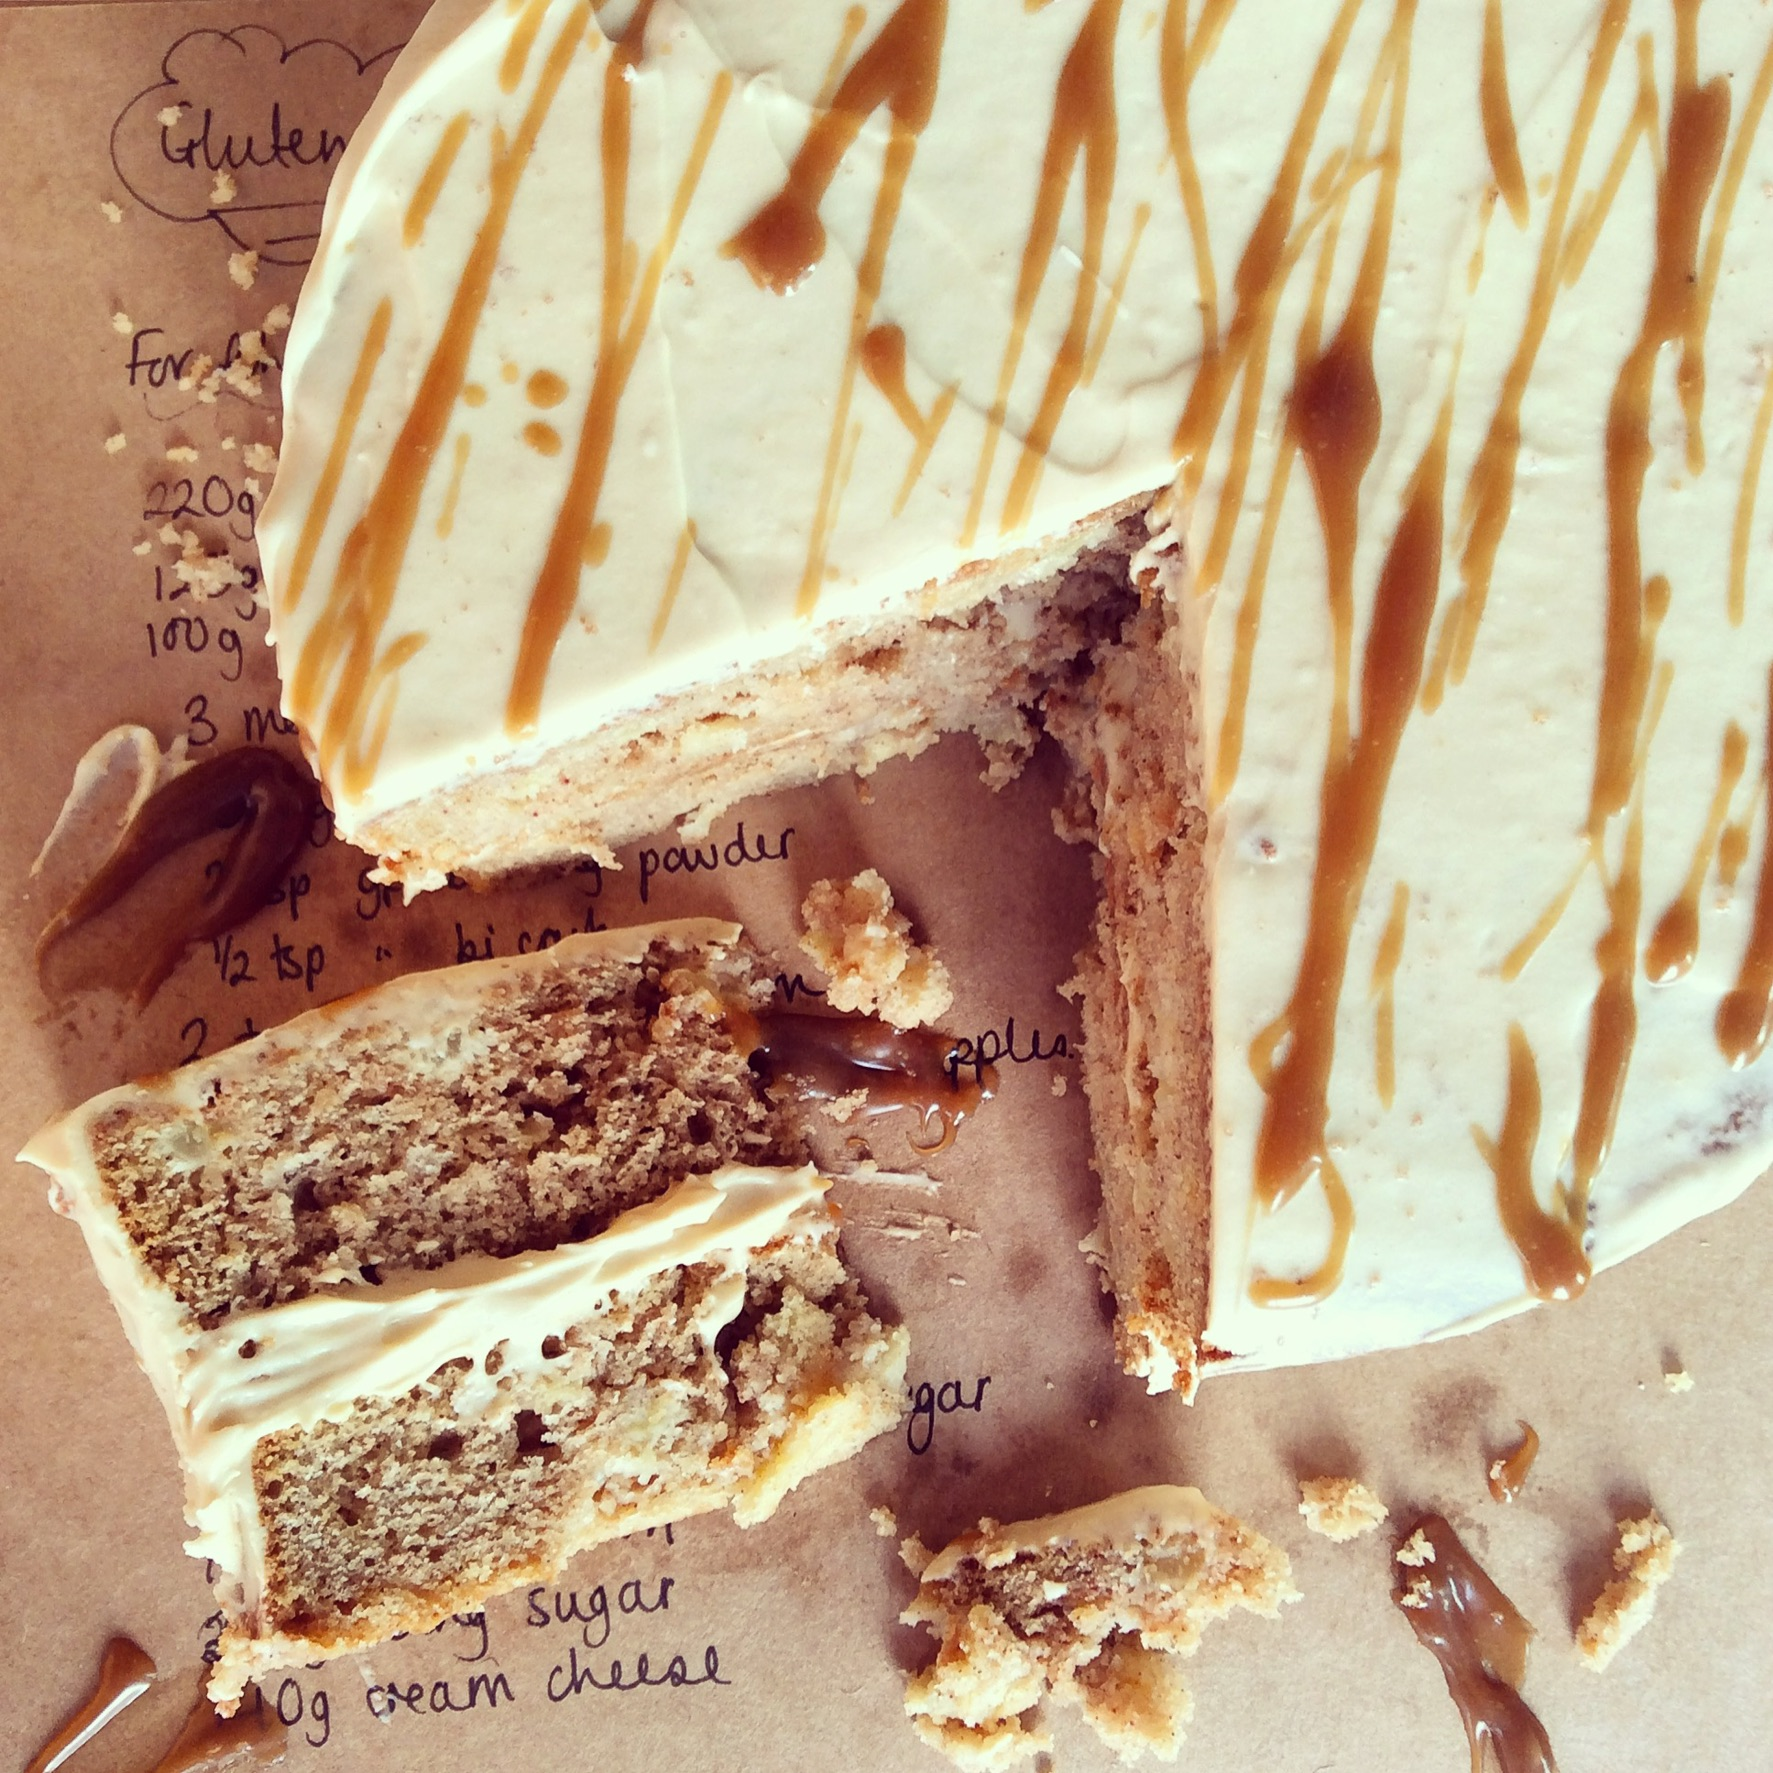 Gluten Free Apple Cake with Toffee Frosting